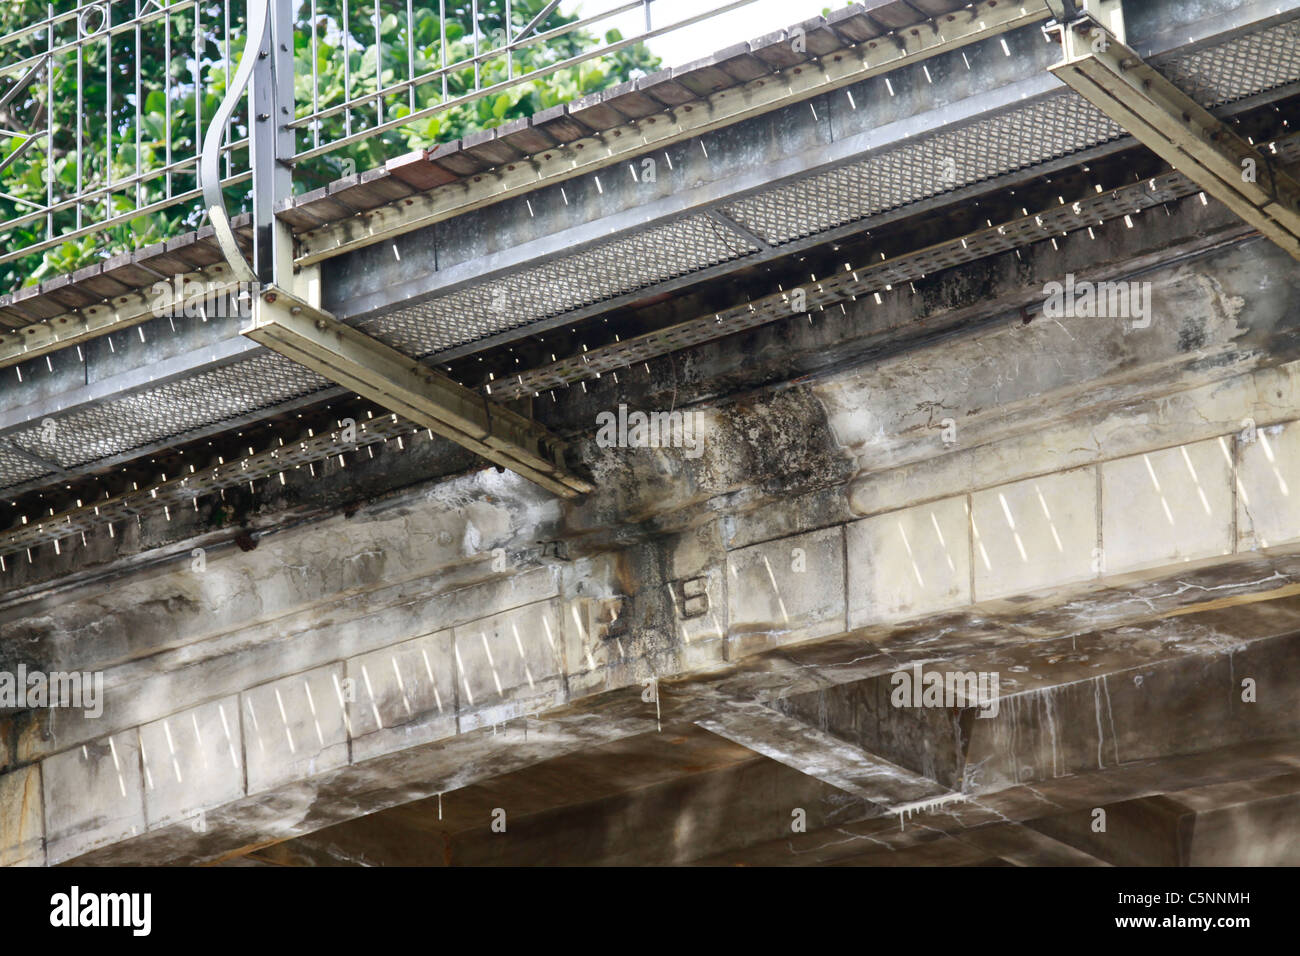 indication, down the pont la ville noire, existing through centuries, mahebourg, mauritius - Stock Image